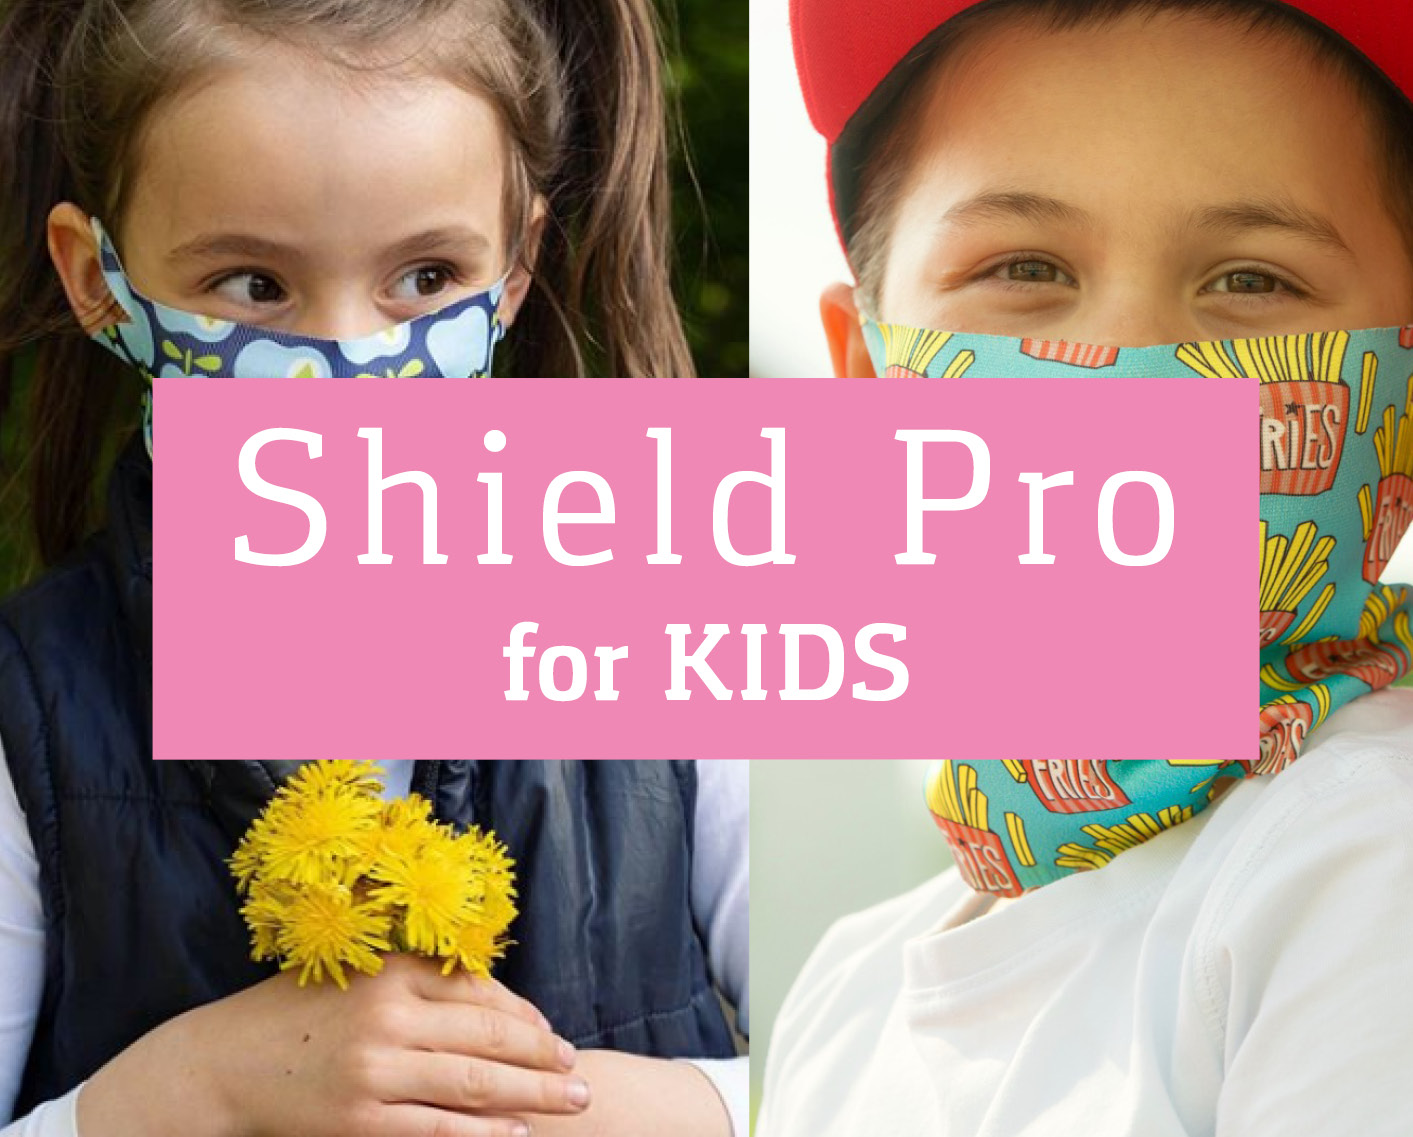 Shield Pro for Kids